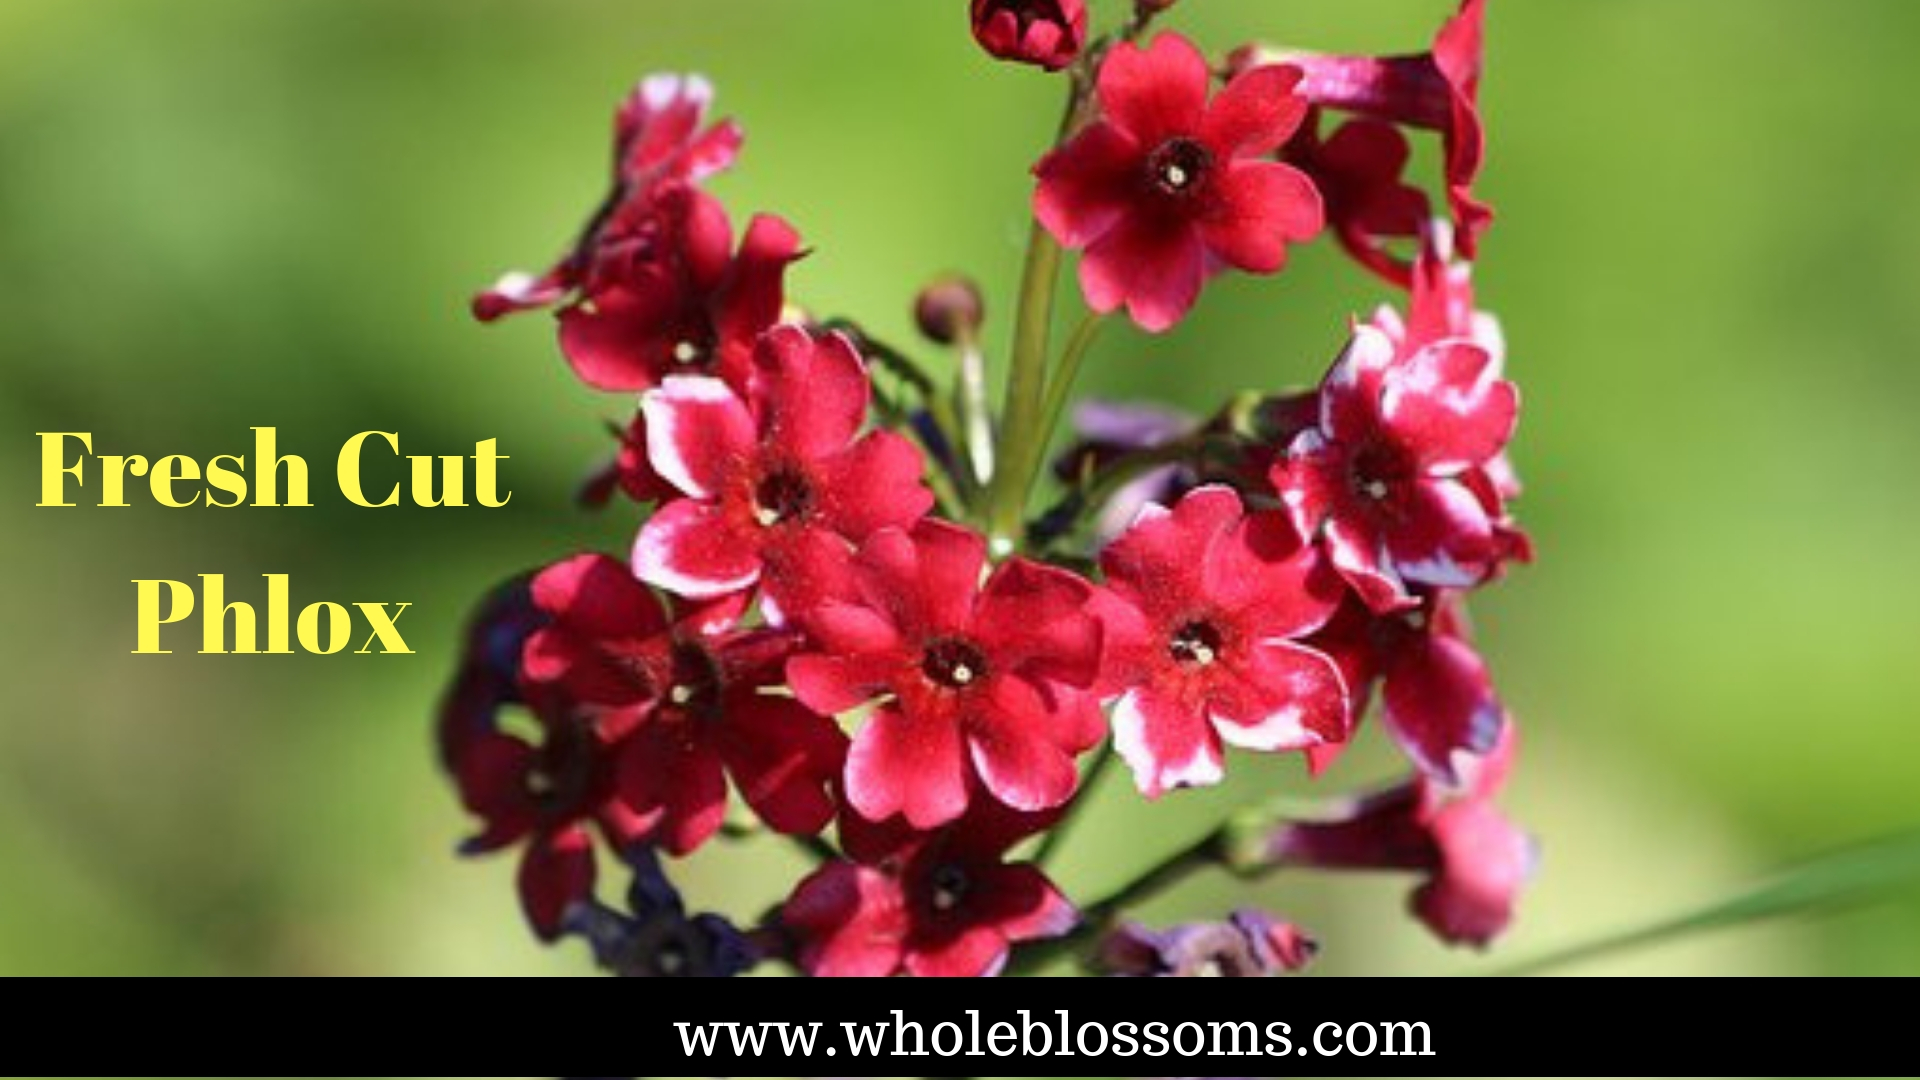 Find the biggest sale on Whole Blossoms for Phlox flowers